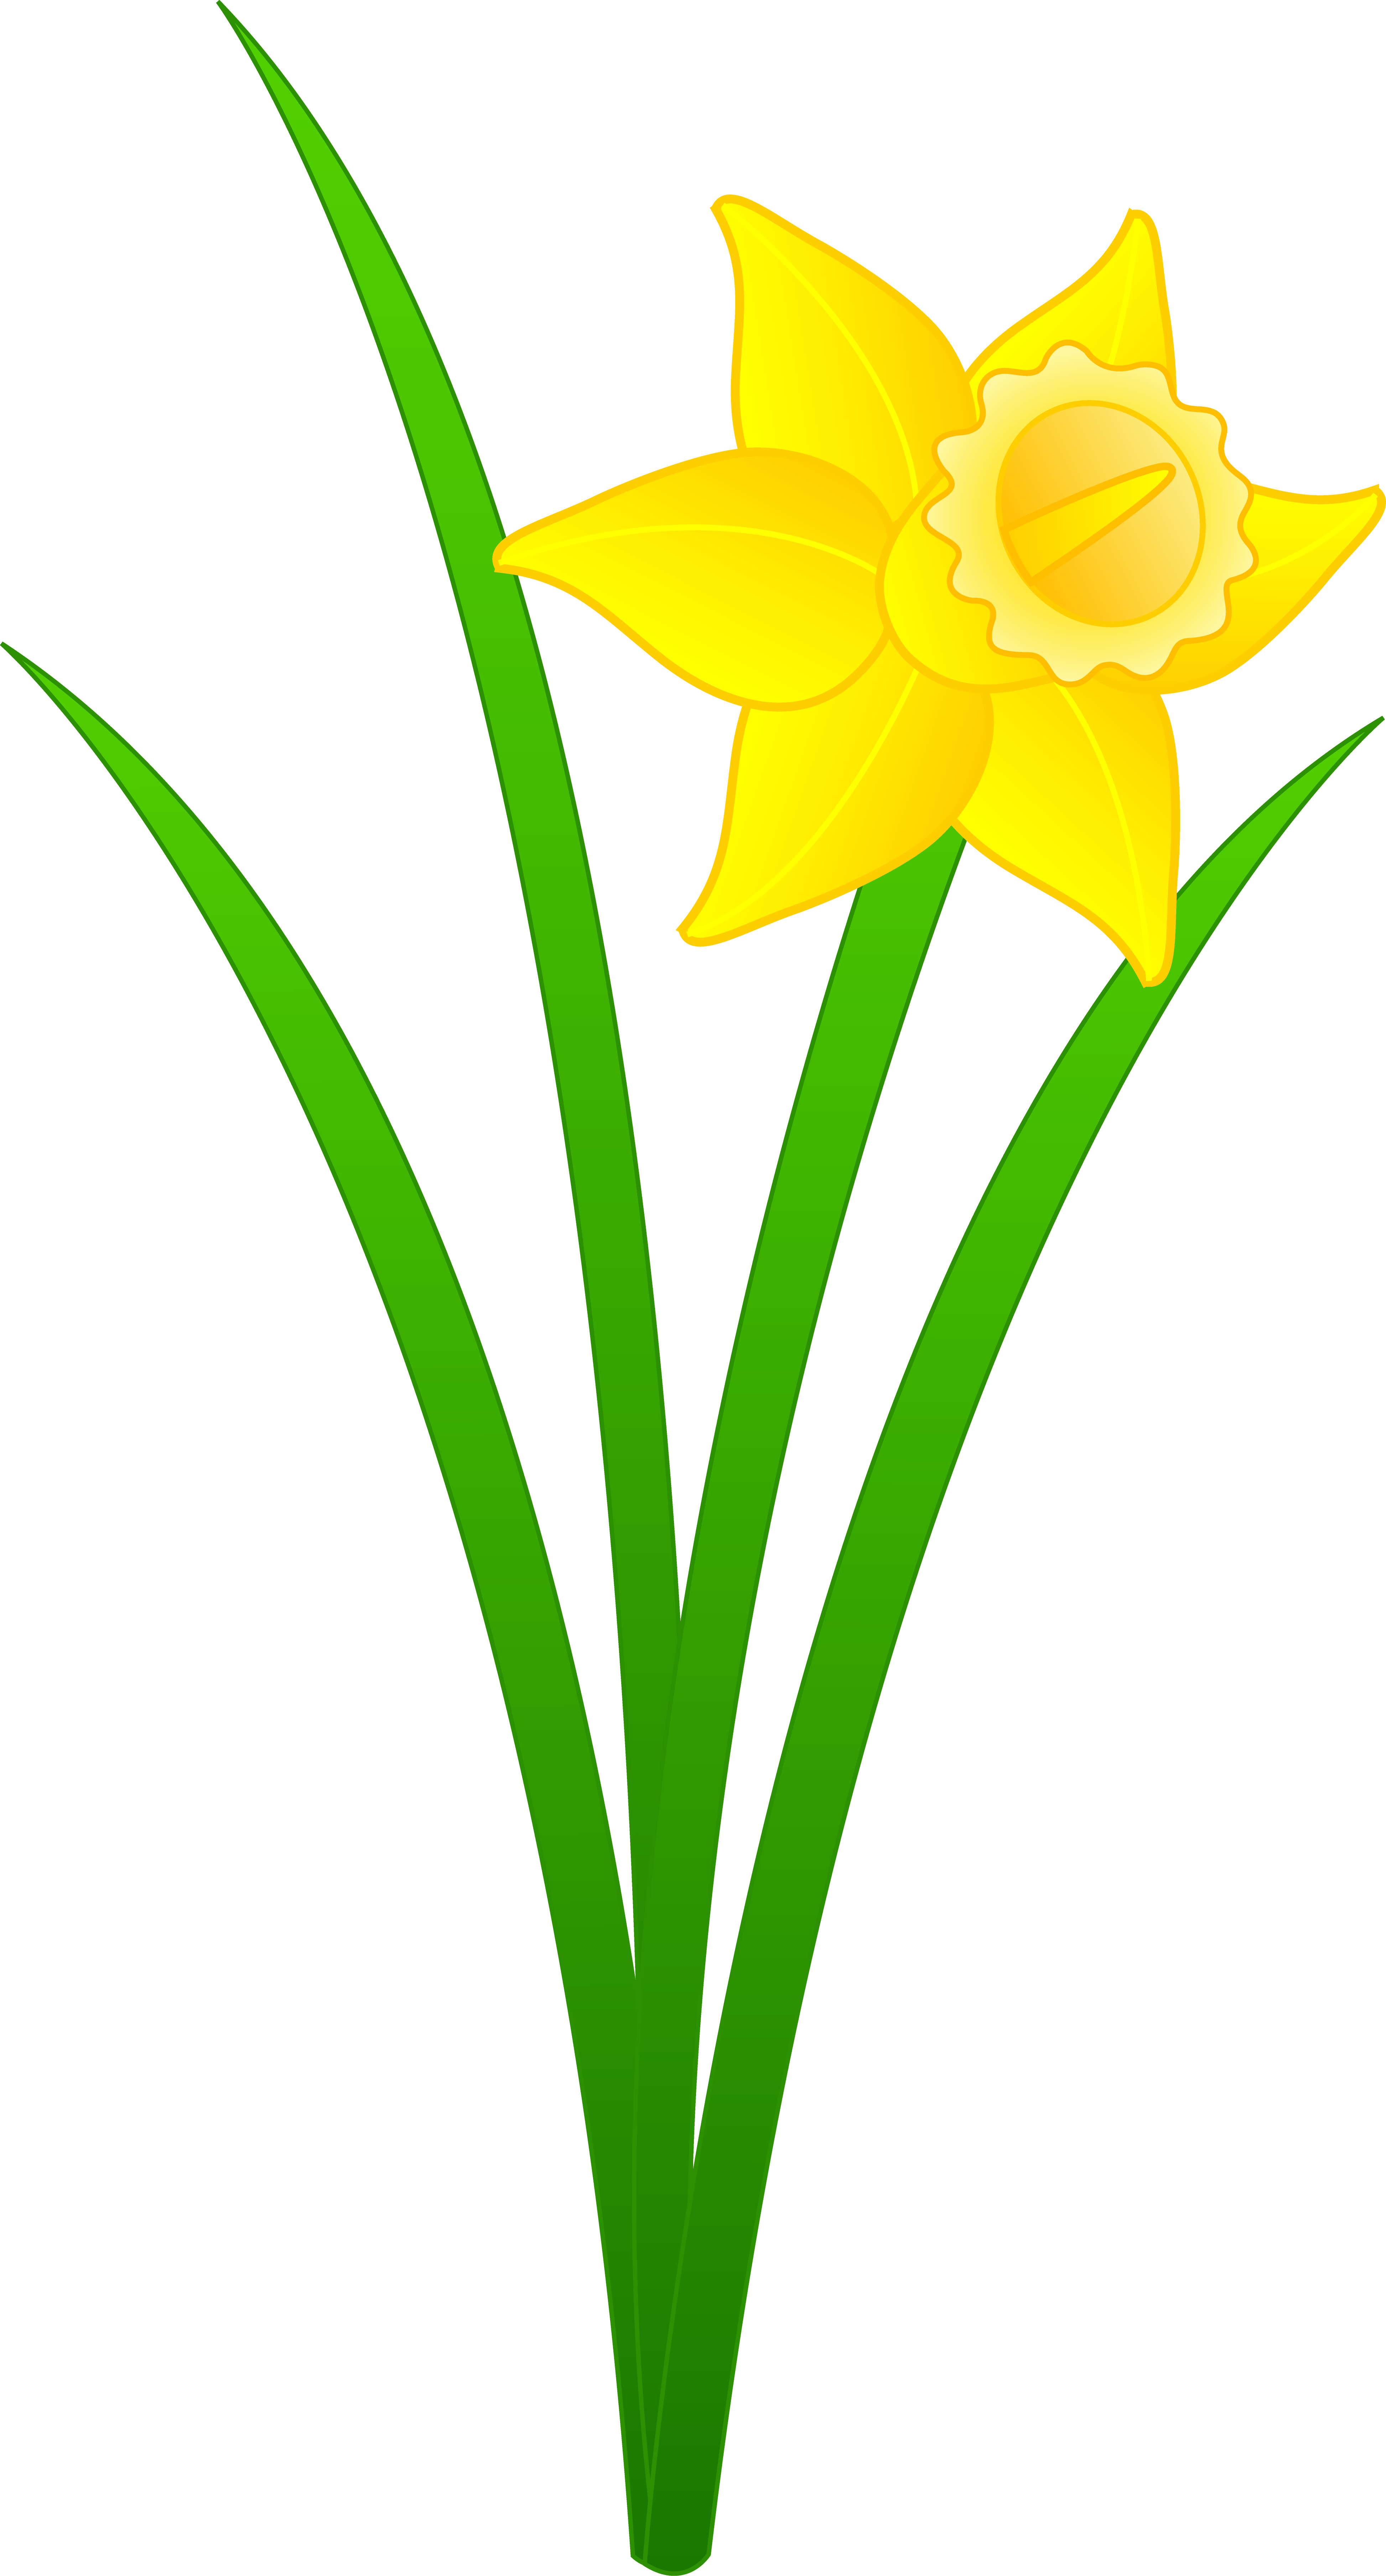 Narcissus Flower Drawing - ClipArt Best